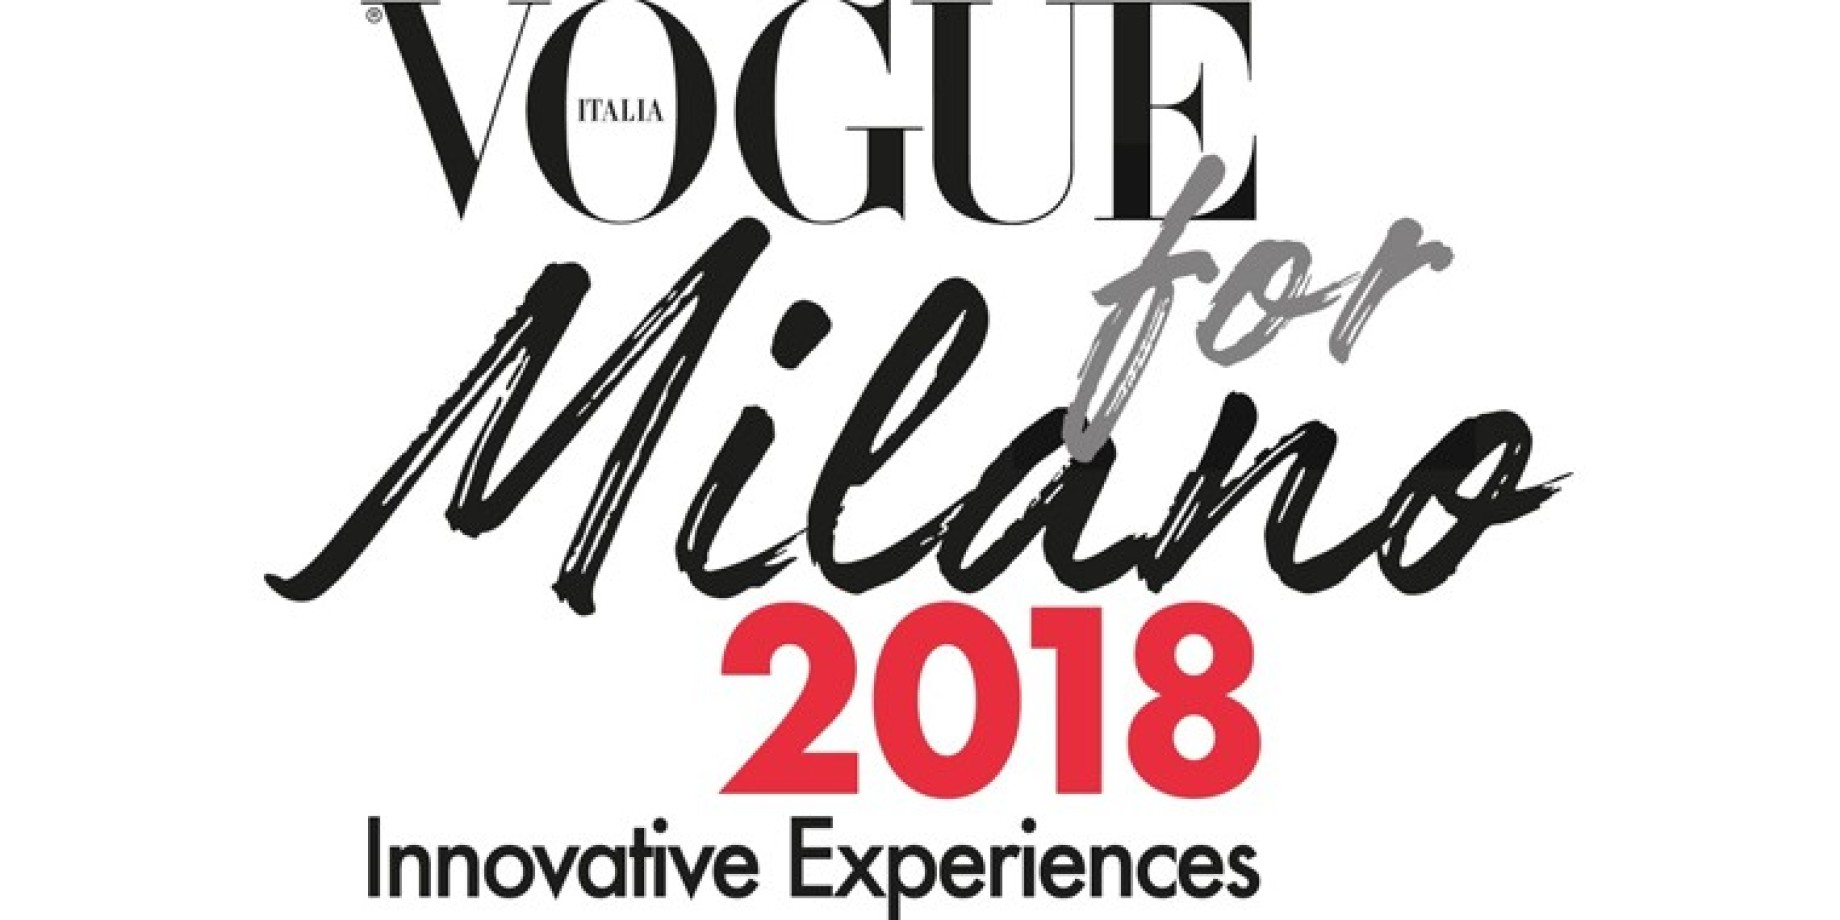 vogue milano